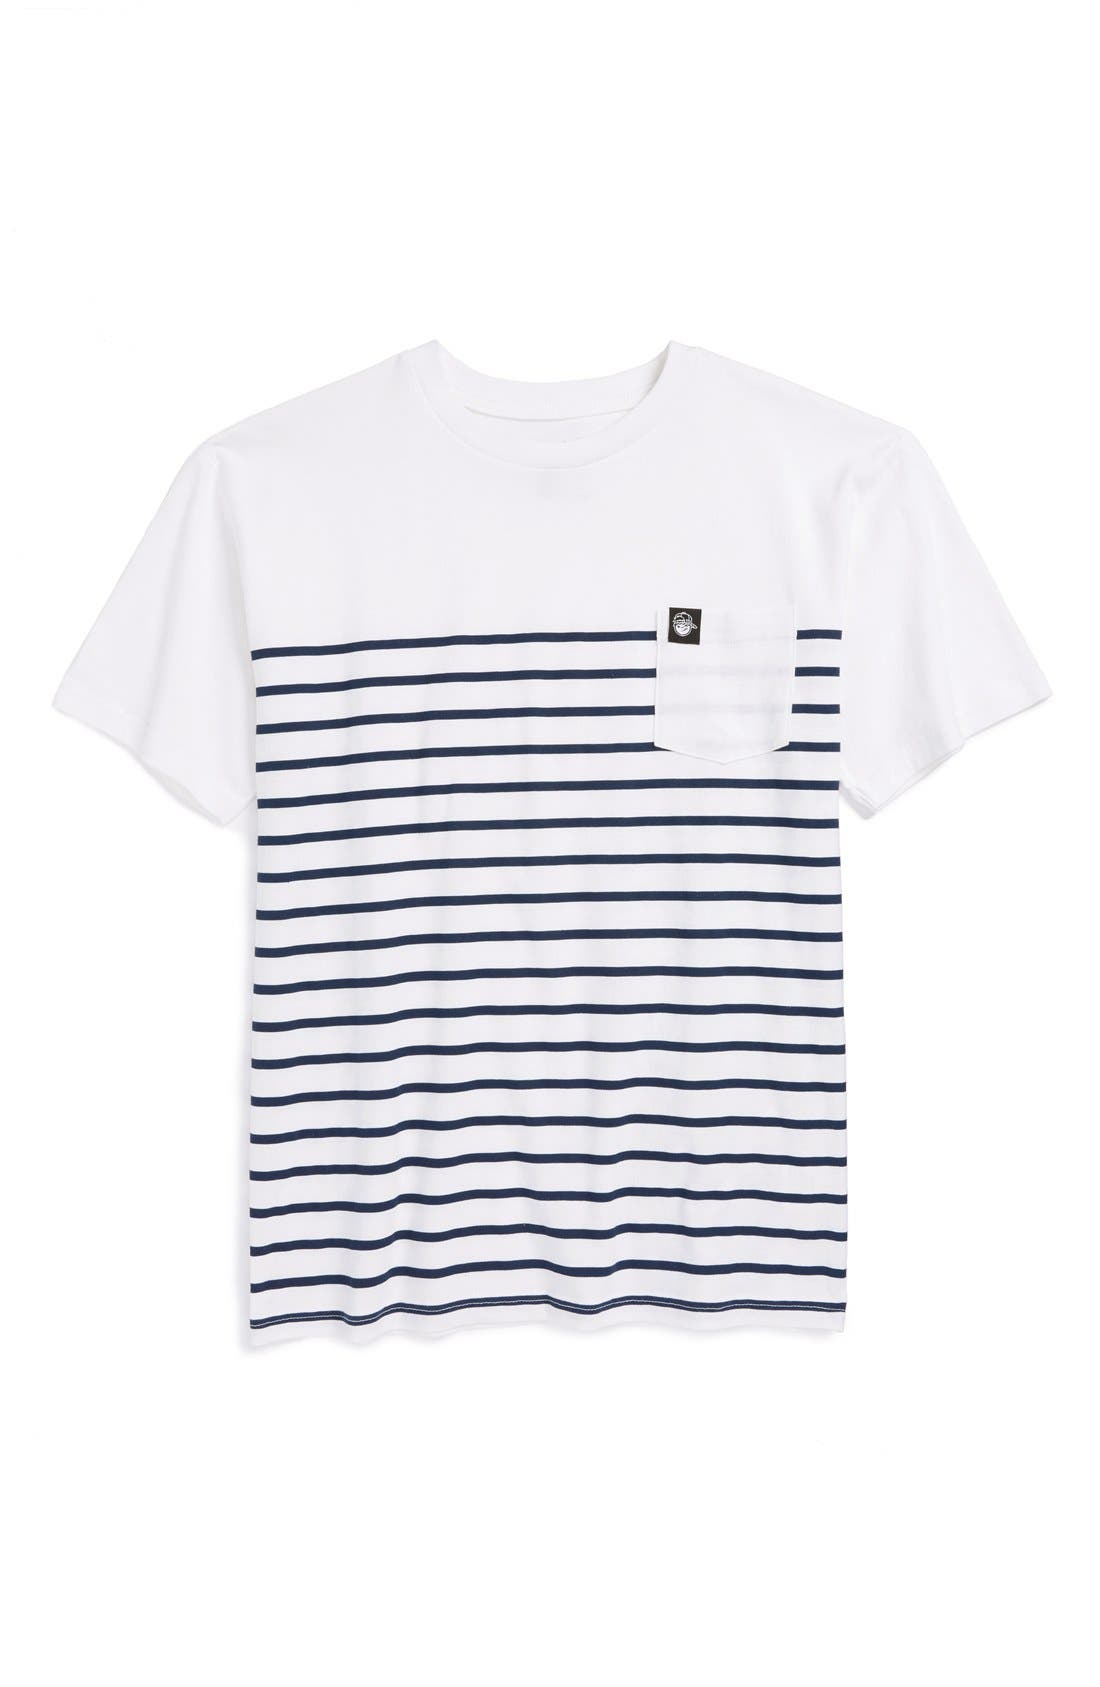 Alternate Image 1 Selected - Neff Stripe Crewneck Cotton T-Shirt (Big Boys)